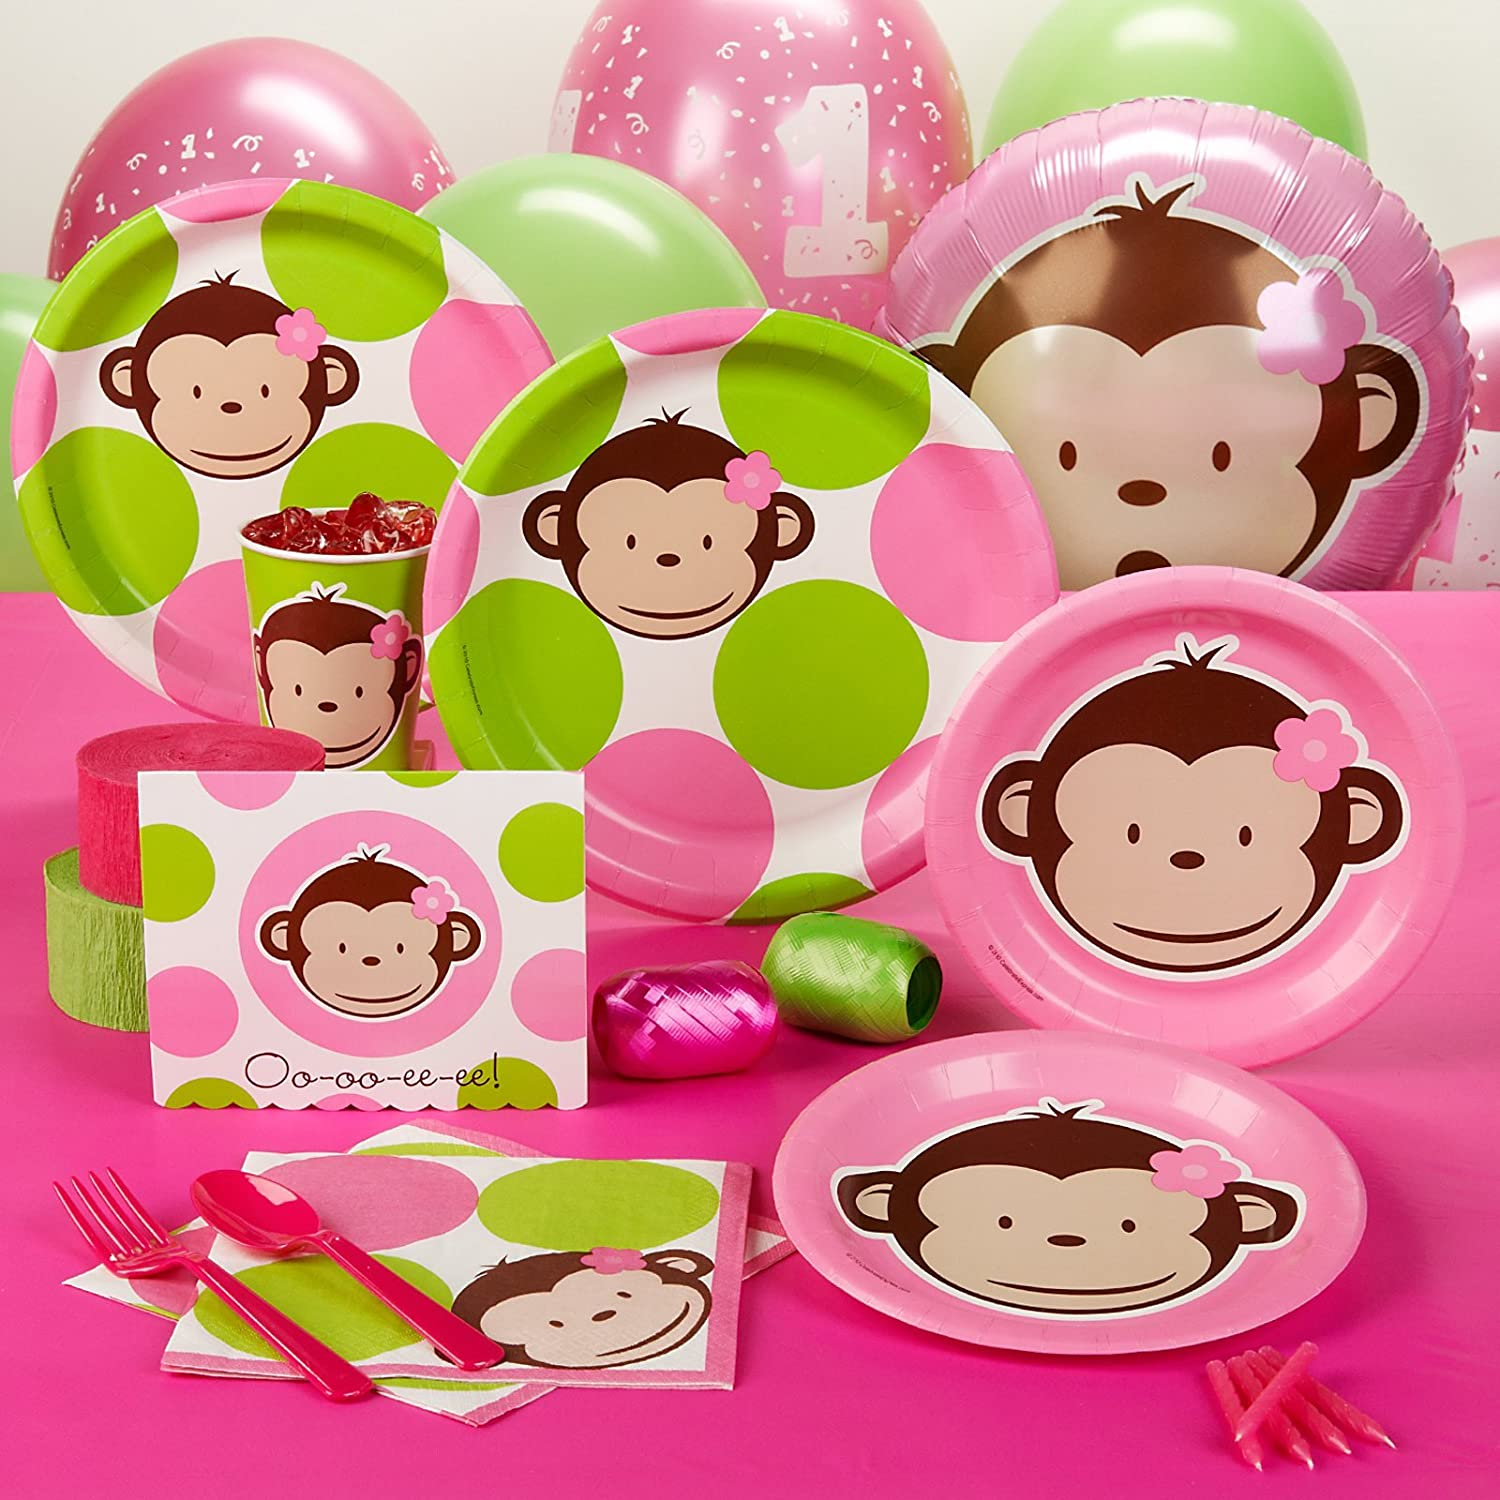 Toddler Girl Birthday Theme Ideas...please Help